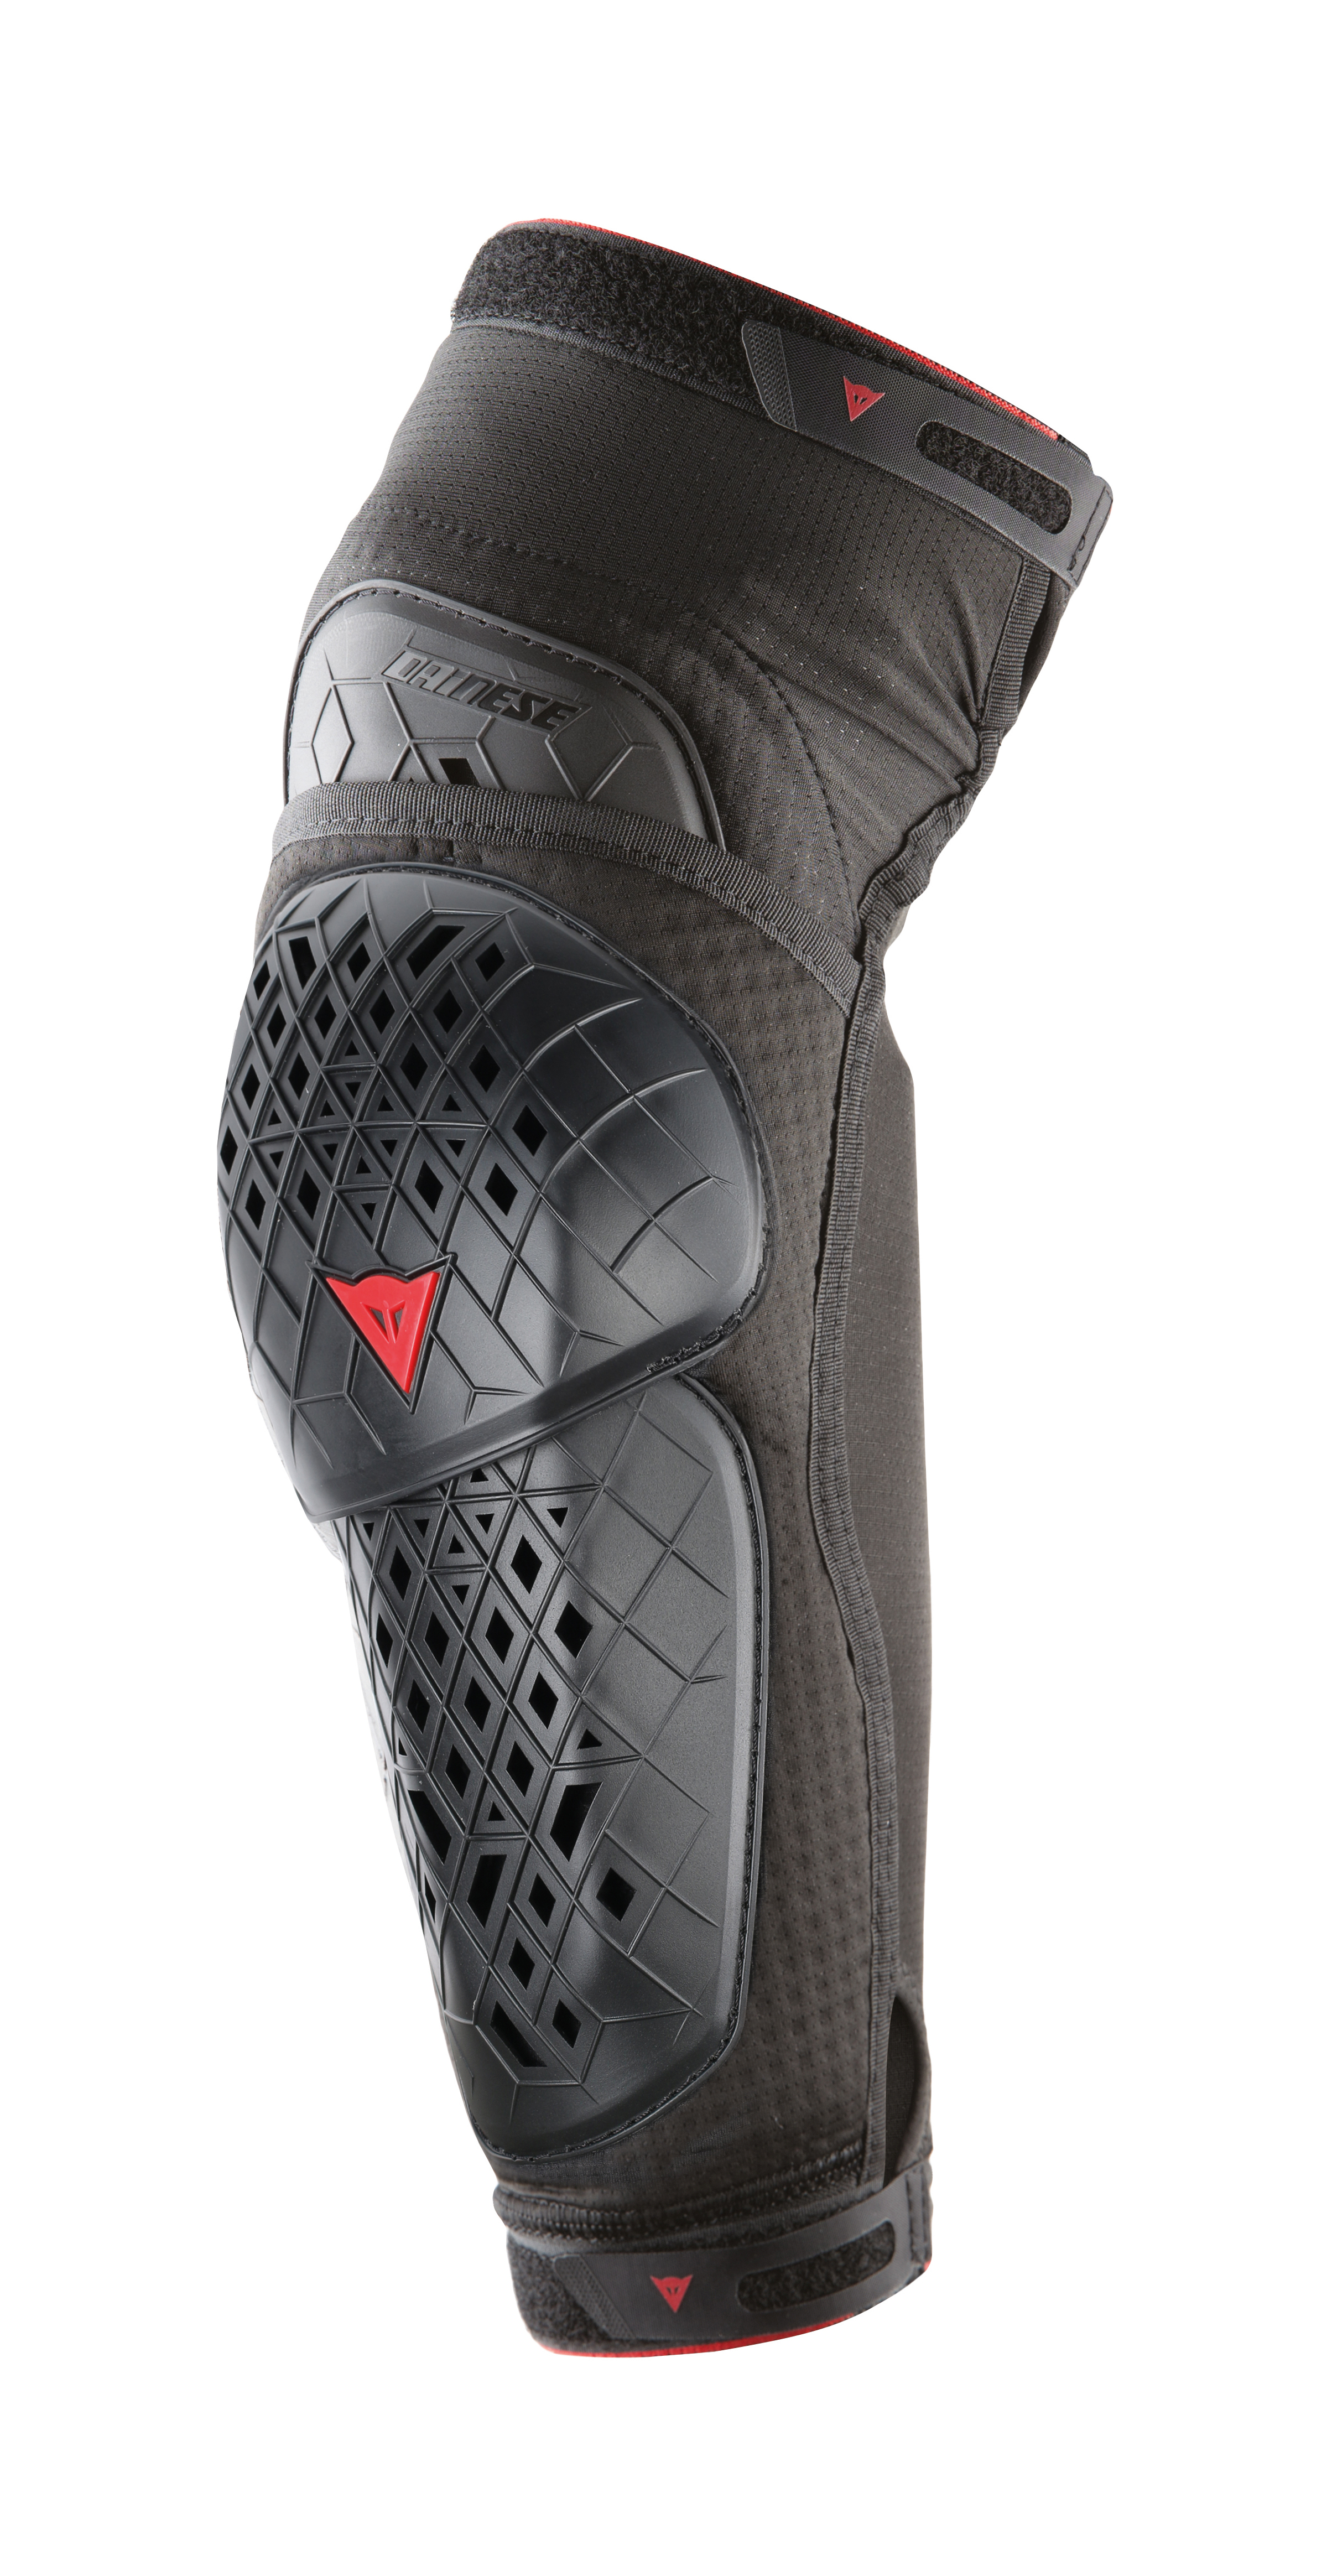 Dainese-Armoform-Elbow-Guard-M